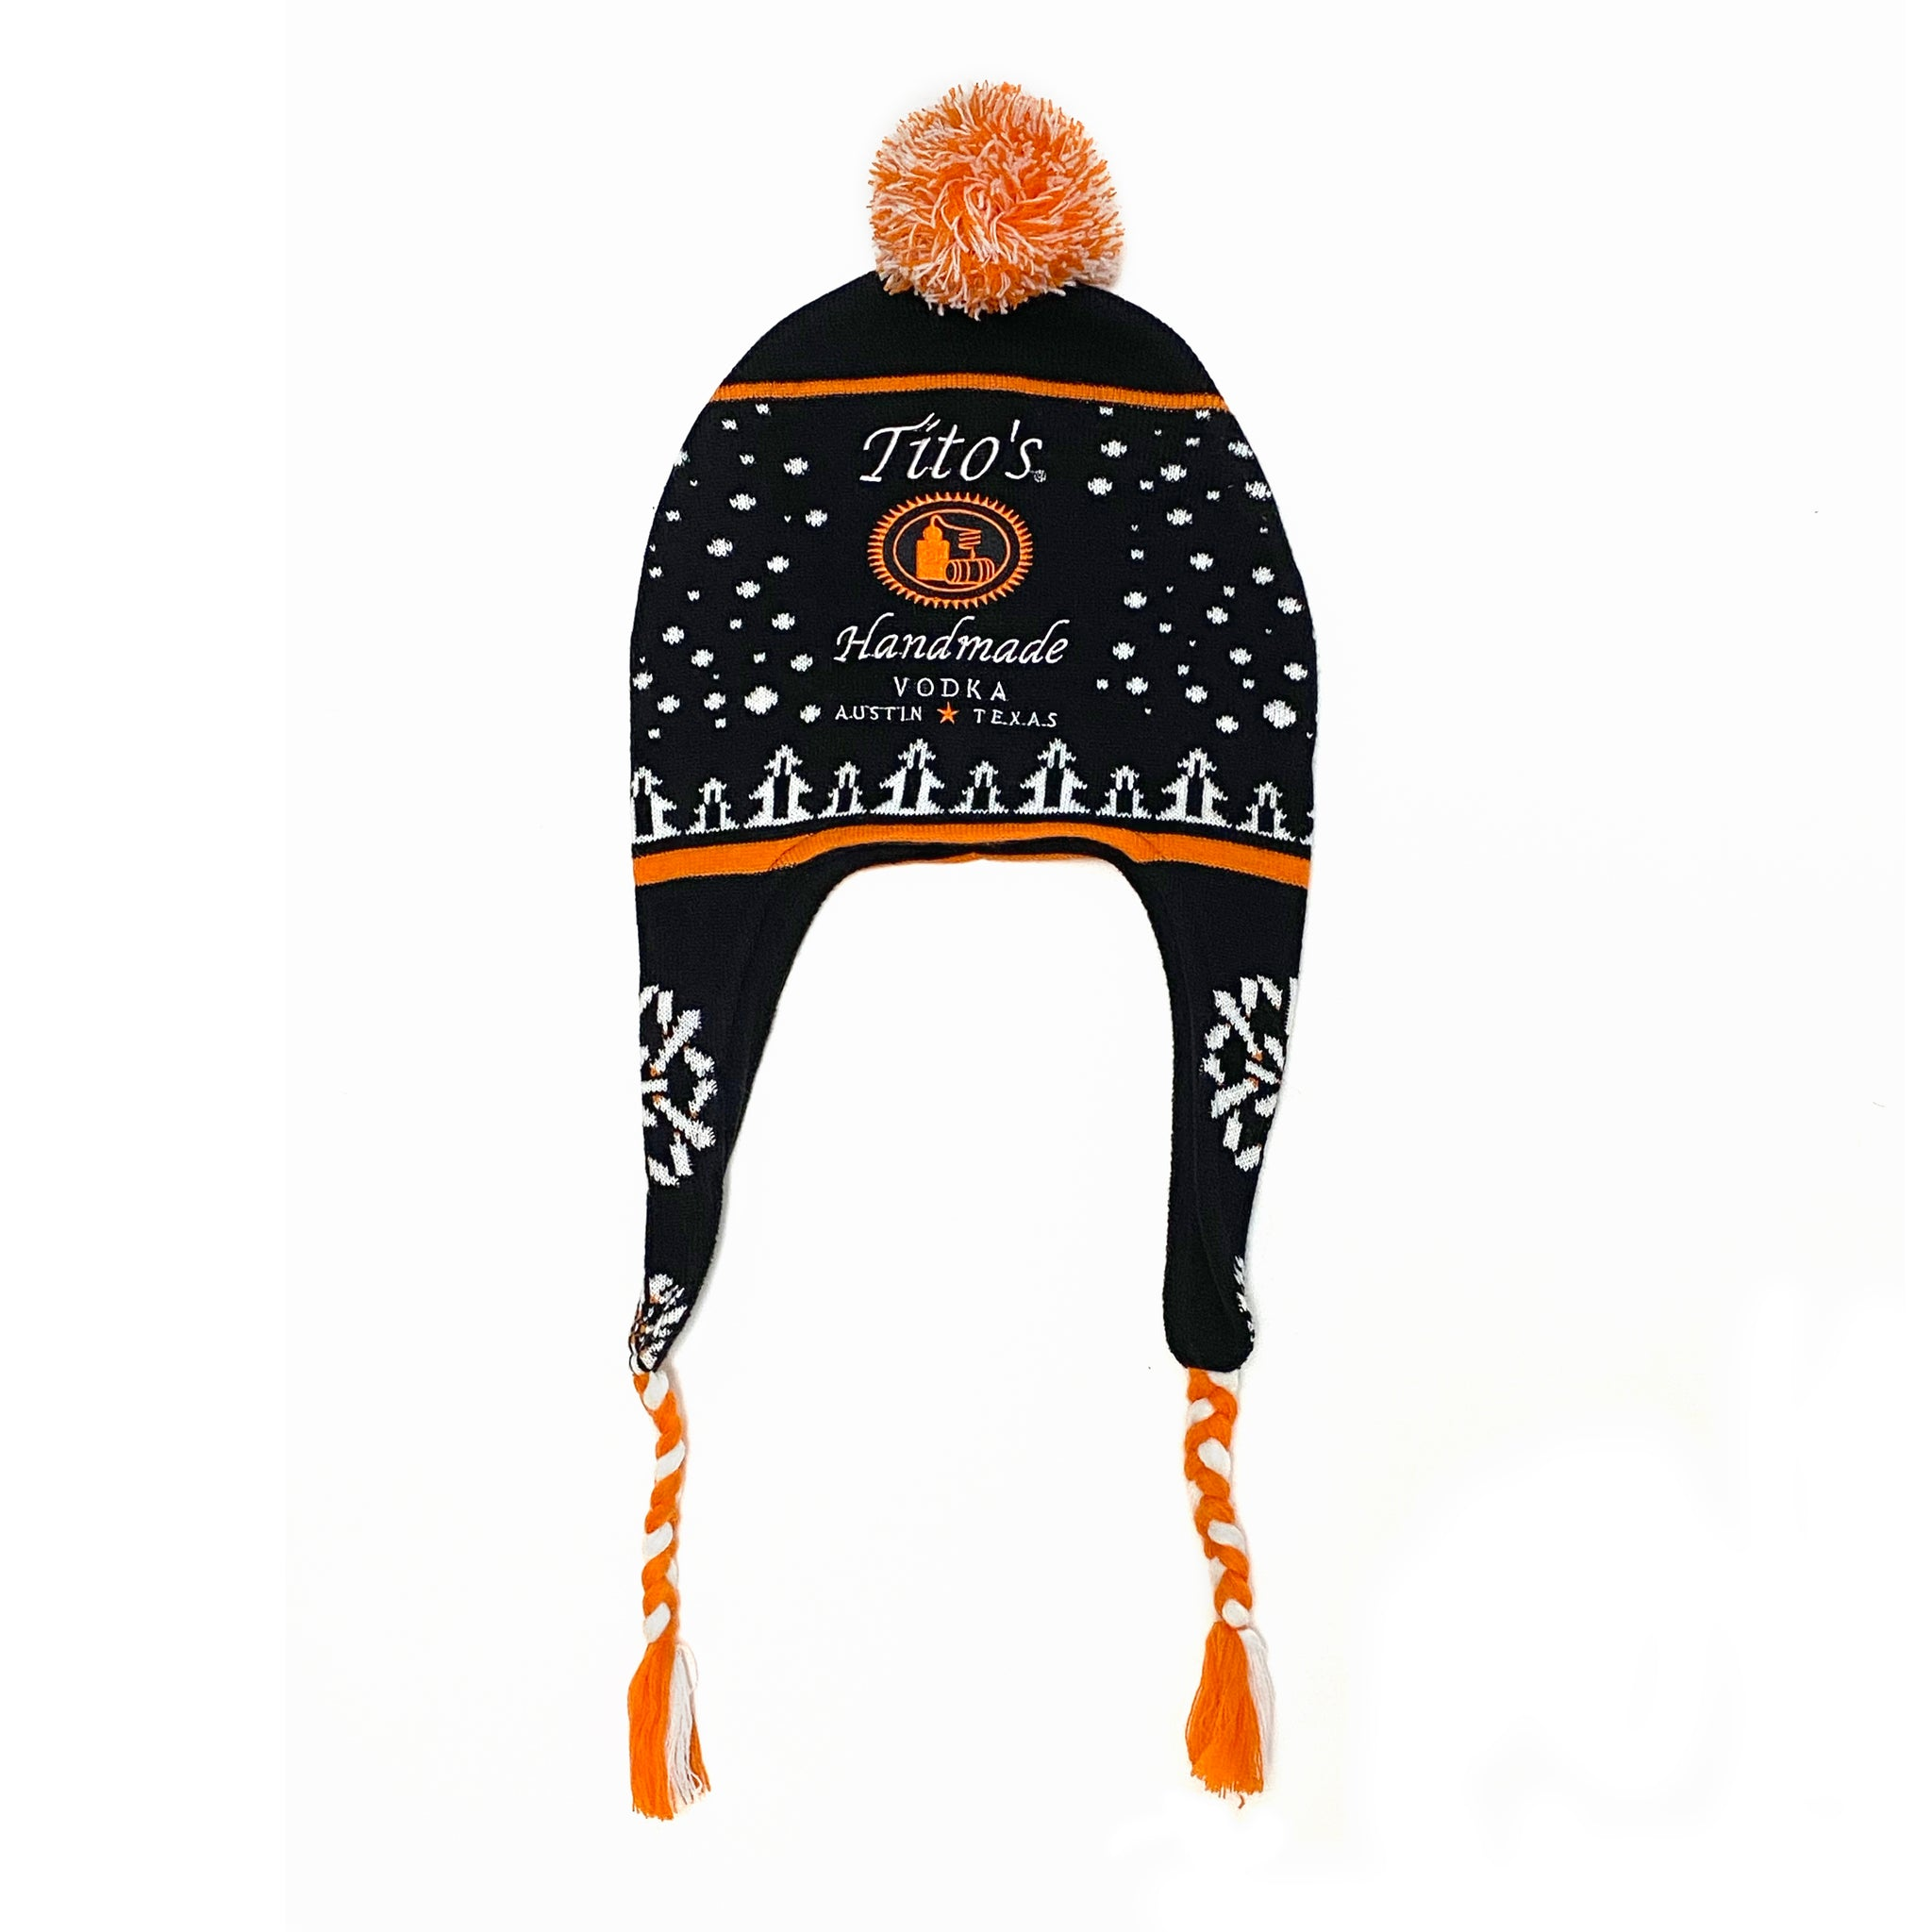 Black, orange, and white knit hat with Tito's Handmade Vodka logo and holiday-inspired designs of snowflakes, trees, and bottles, featuring orange and white braided tassels on both ends and an orange and white pom-pom on top